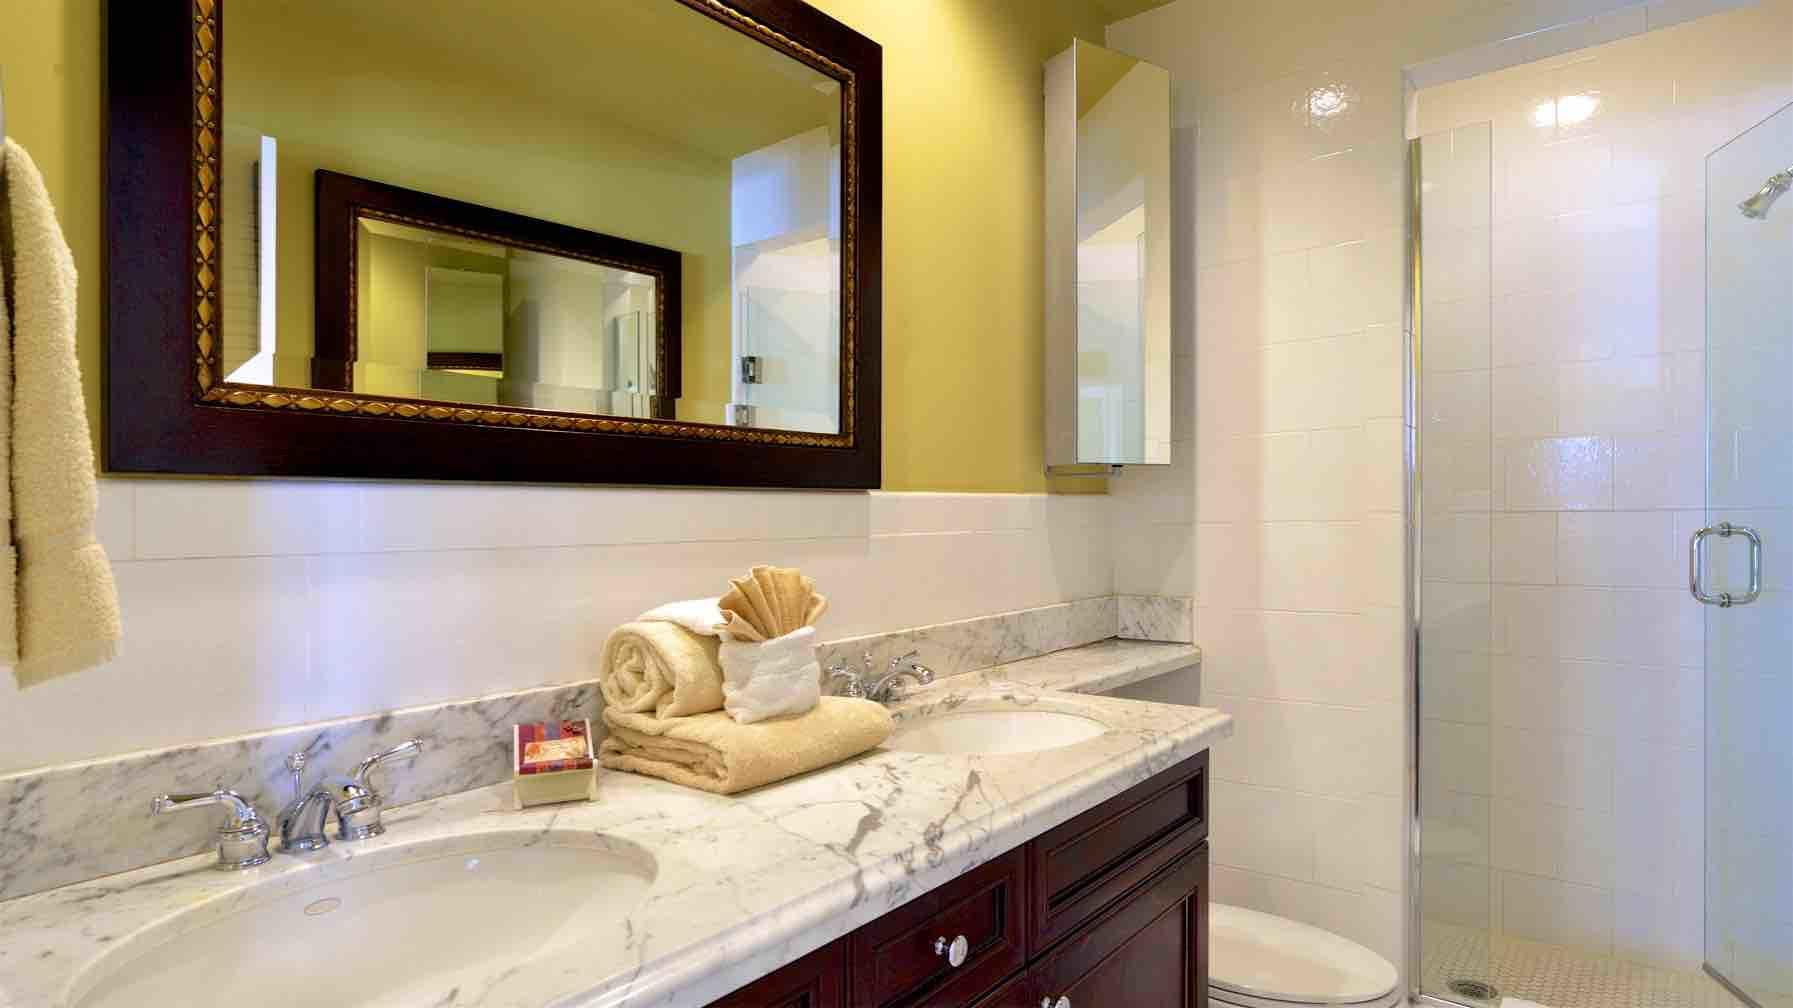 The master bedroom suite inlcudes private bathroom, with twin vanities & shower...